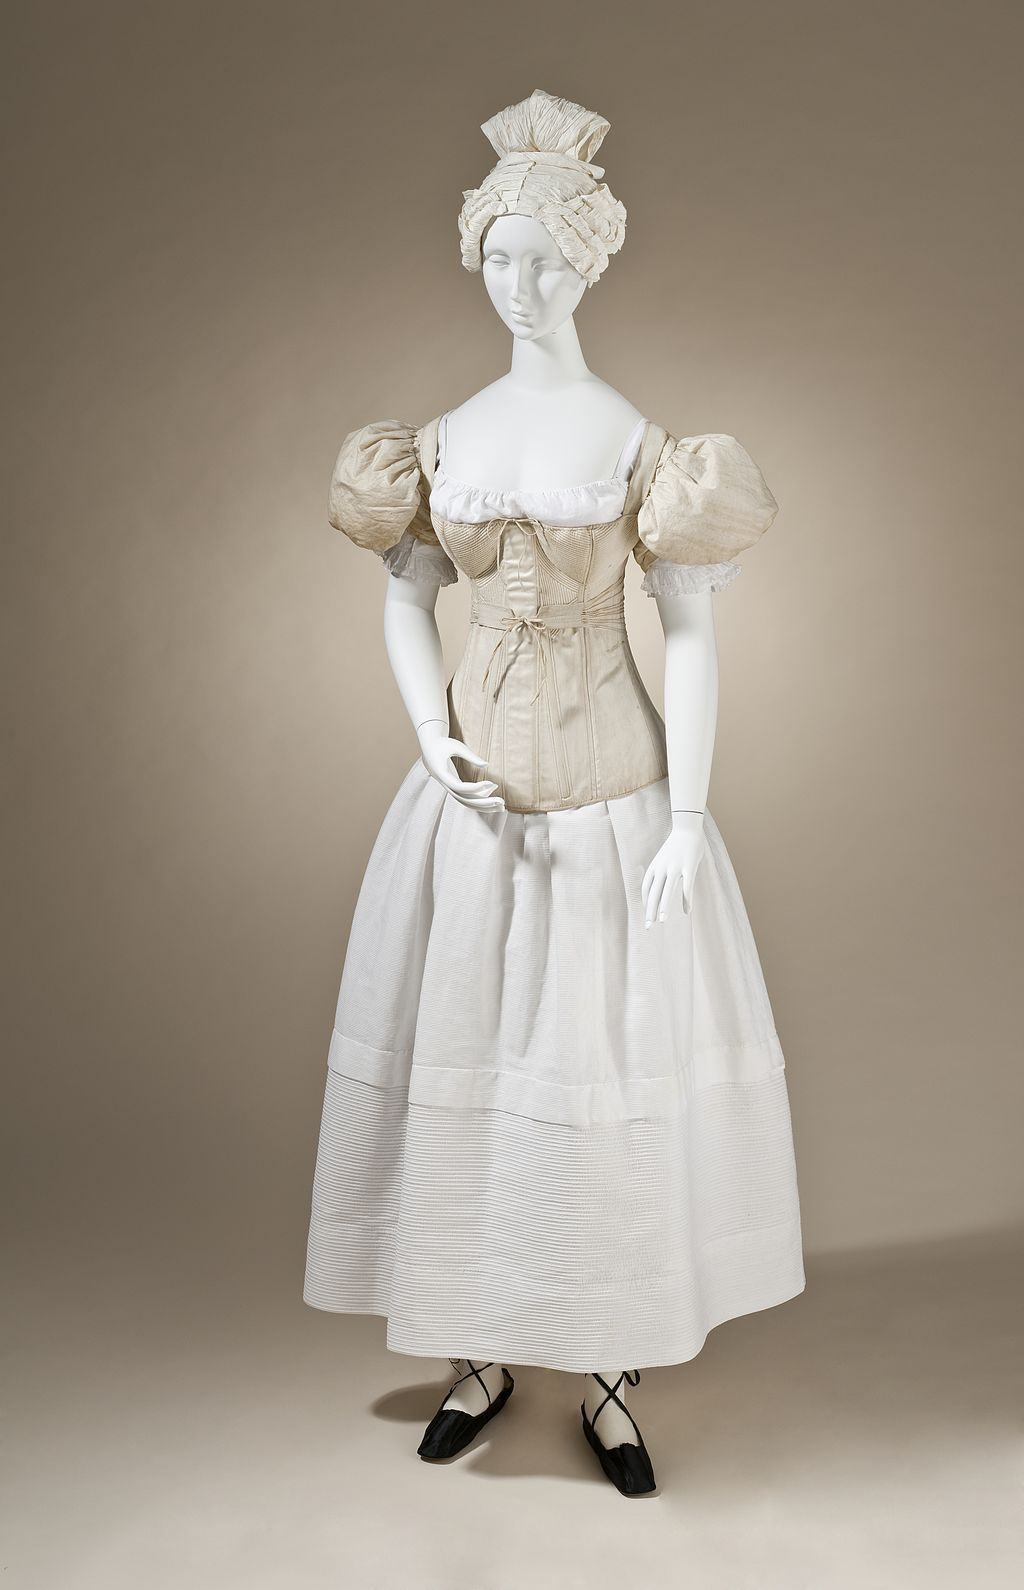 Sleeve Plumpers 1830s In Western Fashion Wikipedia Fashion Historical Dresses Women Corset